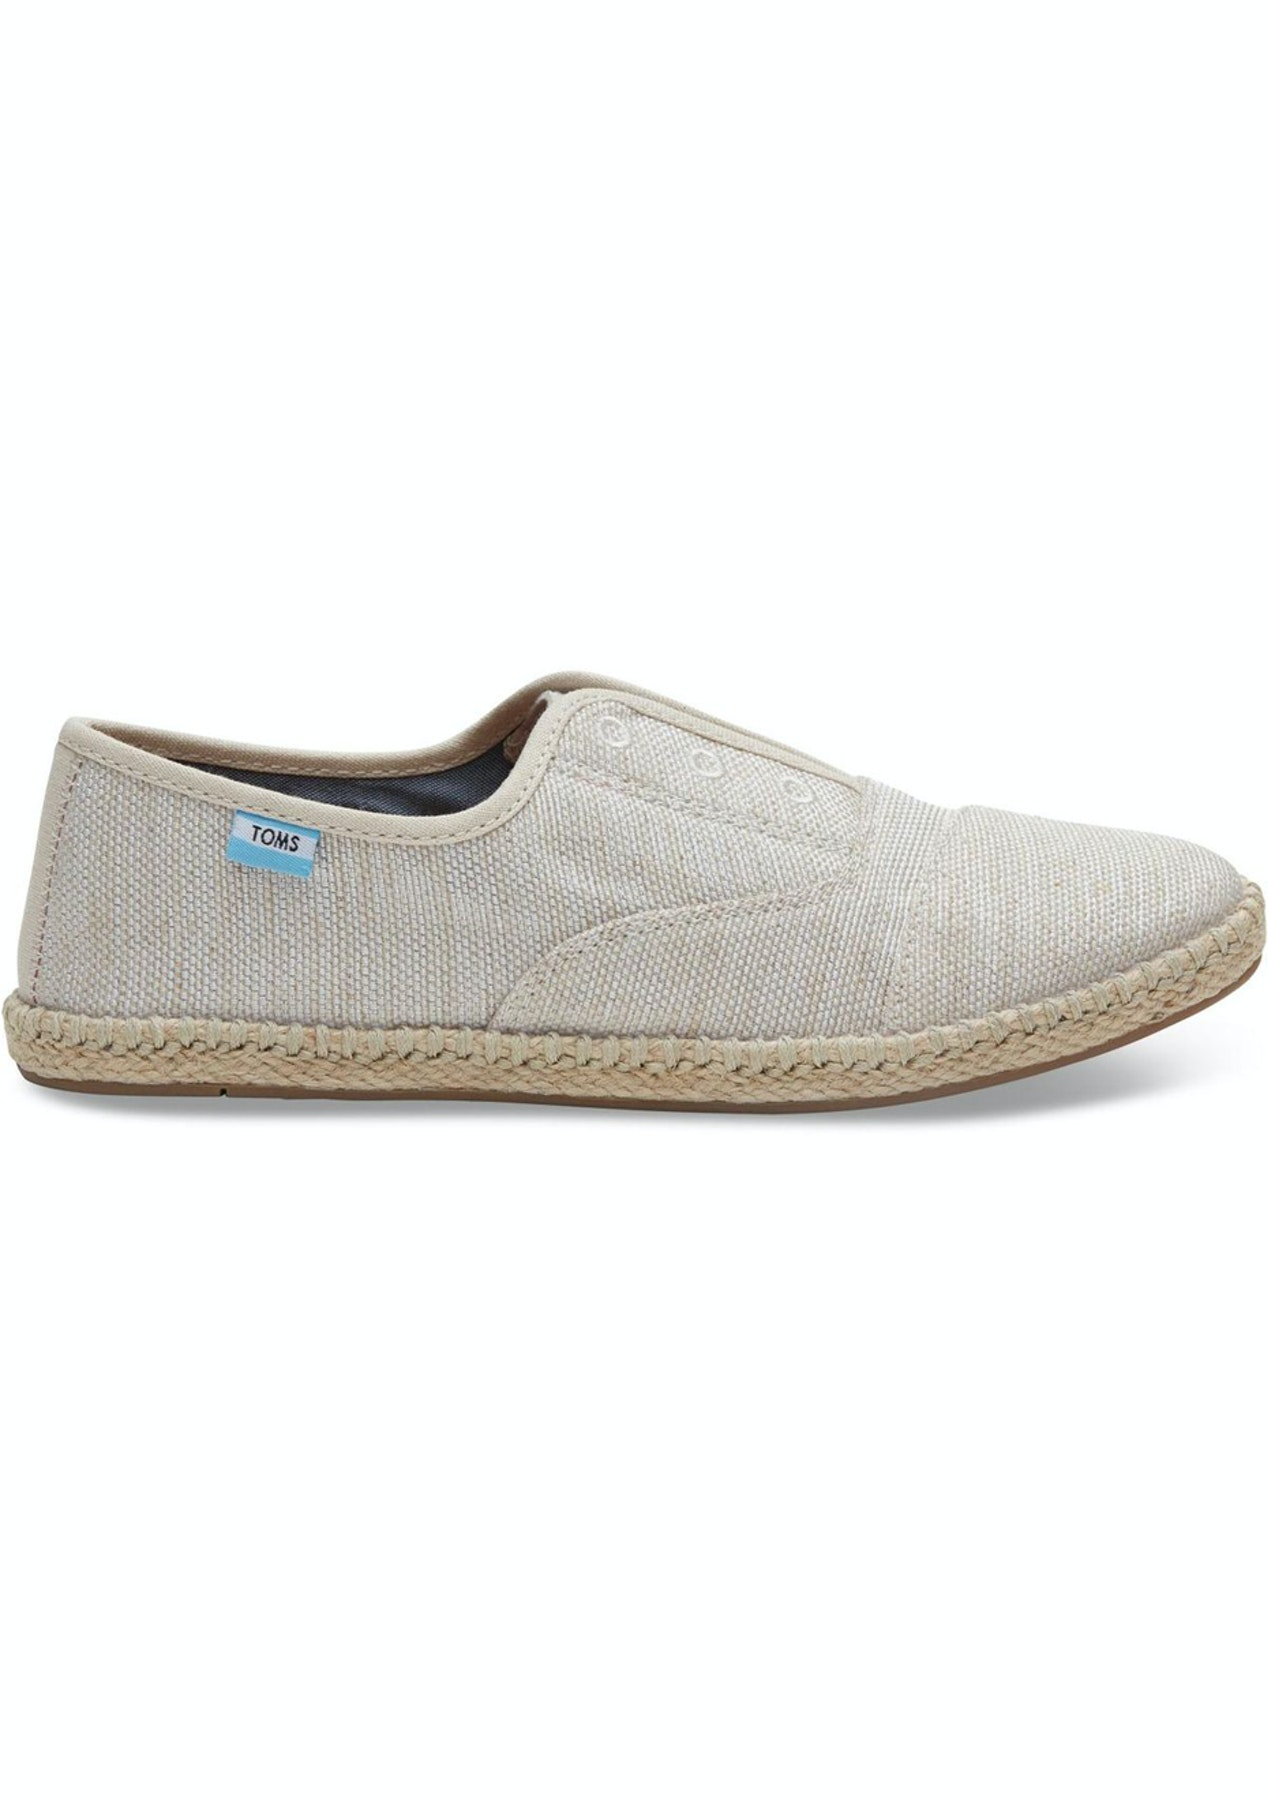 9d6d55cd6d6 Toms - Womens Palmera Slip On - Natural Yarn Dye - Toms - Onceit